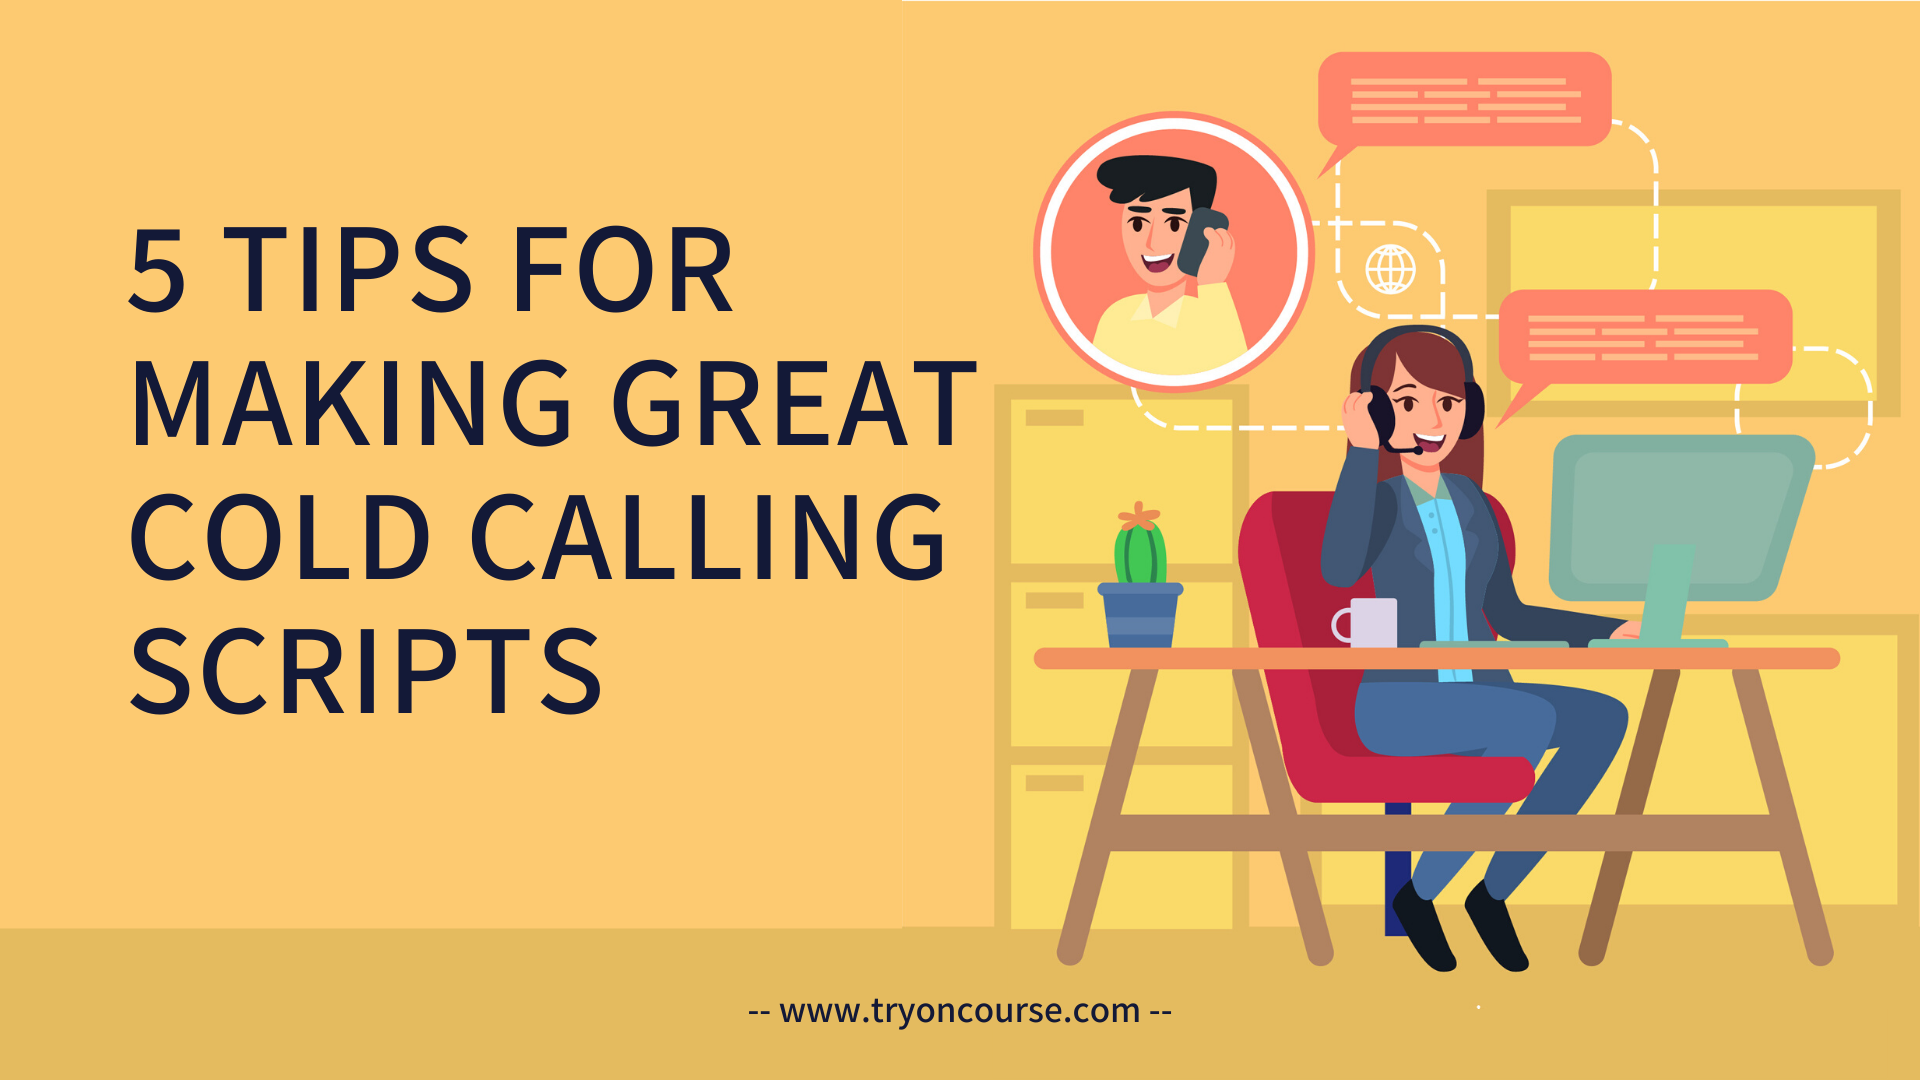 5 Tips for Making Great Cold Calling Scripts